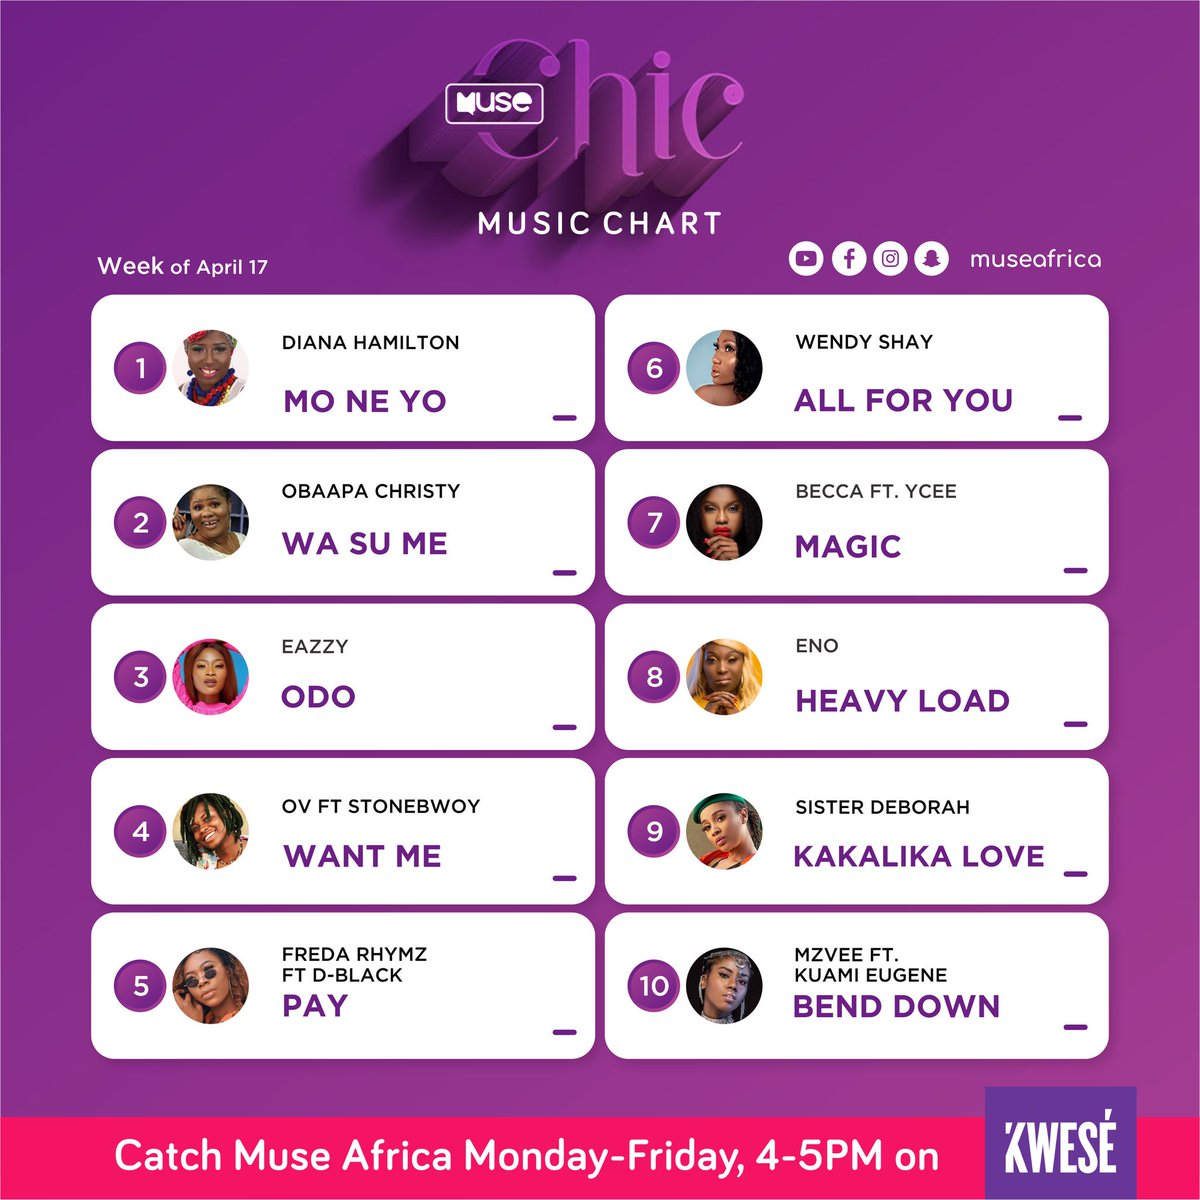 #MuseBOQ19 @DianaHamilton comes in at number 1 for this week's Muse Chic Music Chart as @Eazzyfirstlady maintains the number 3 spot  @wendyshaygh @ov_music_ @deborahvanessa7 @mzveegh @beccafrica @FredaRhymzGH @eno_barony